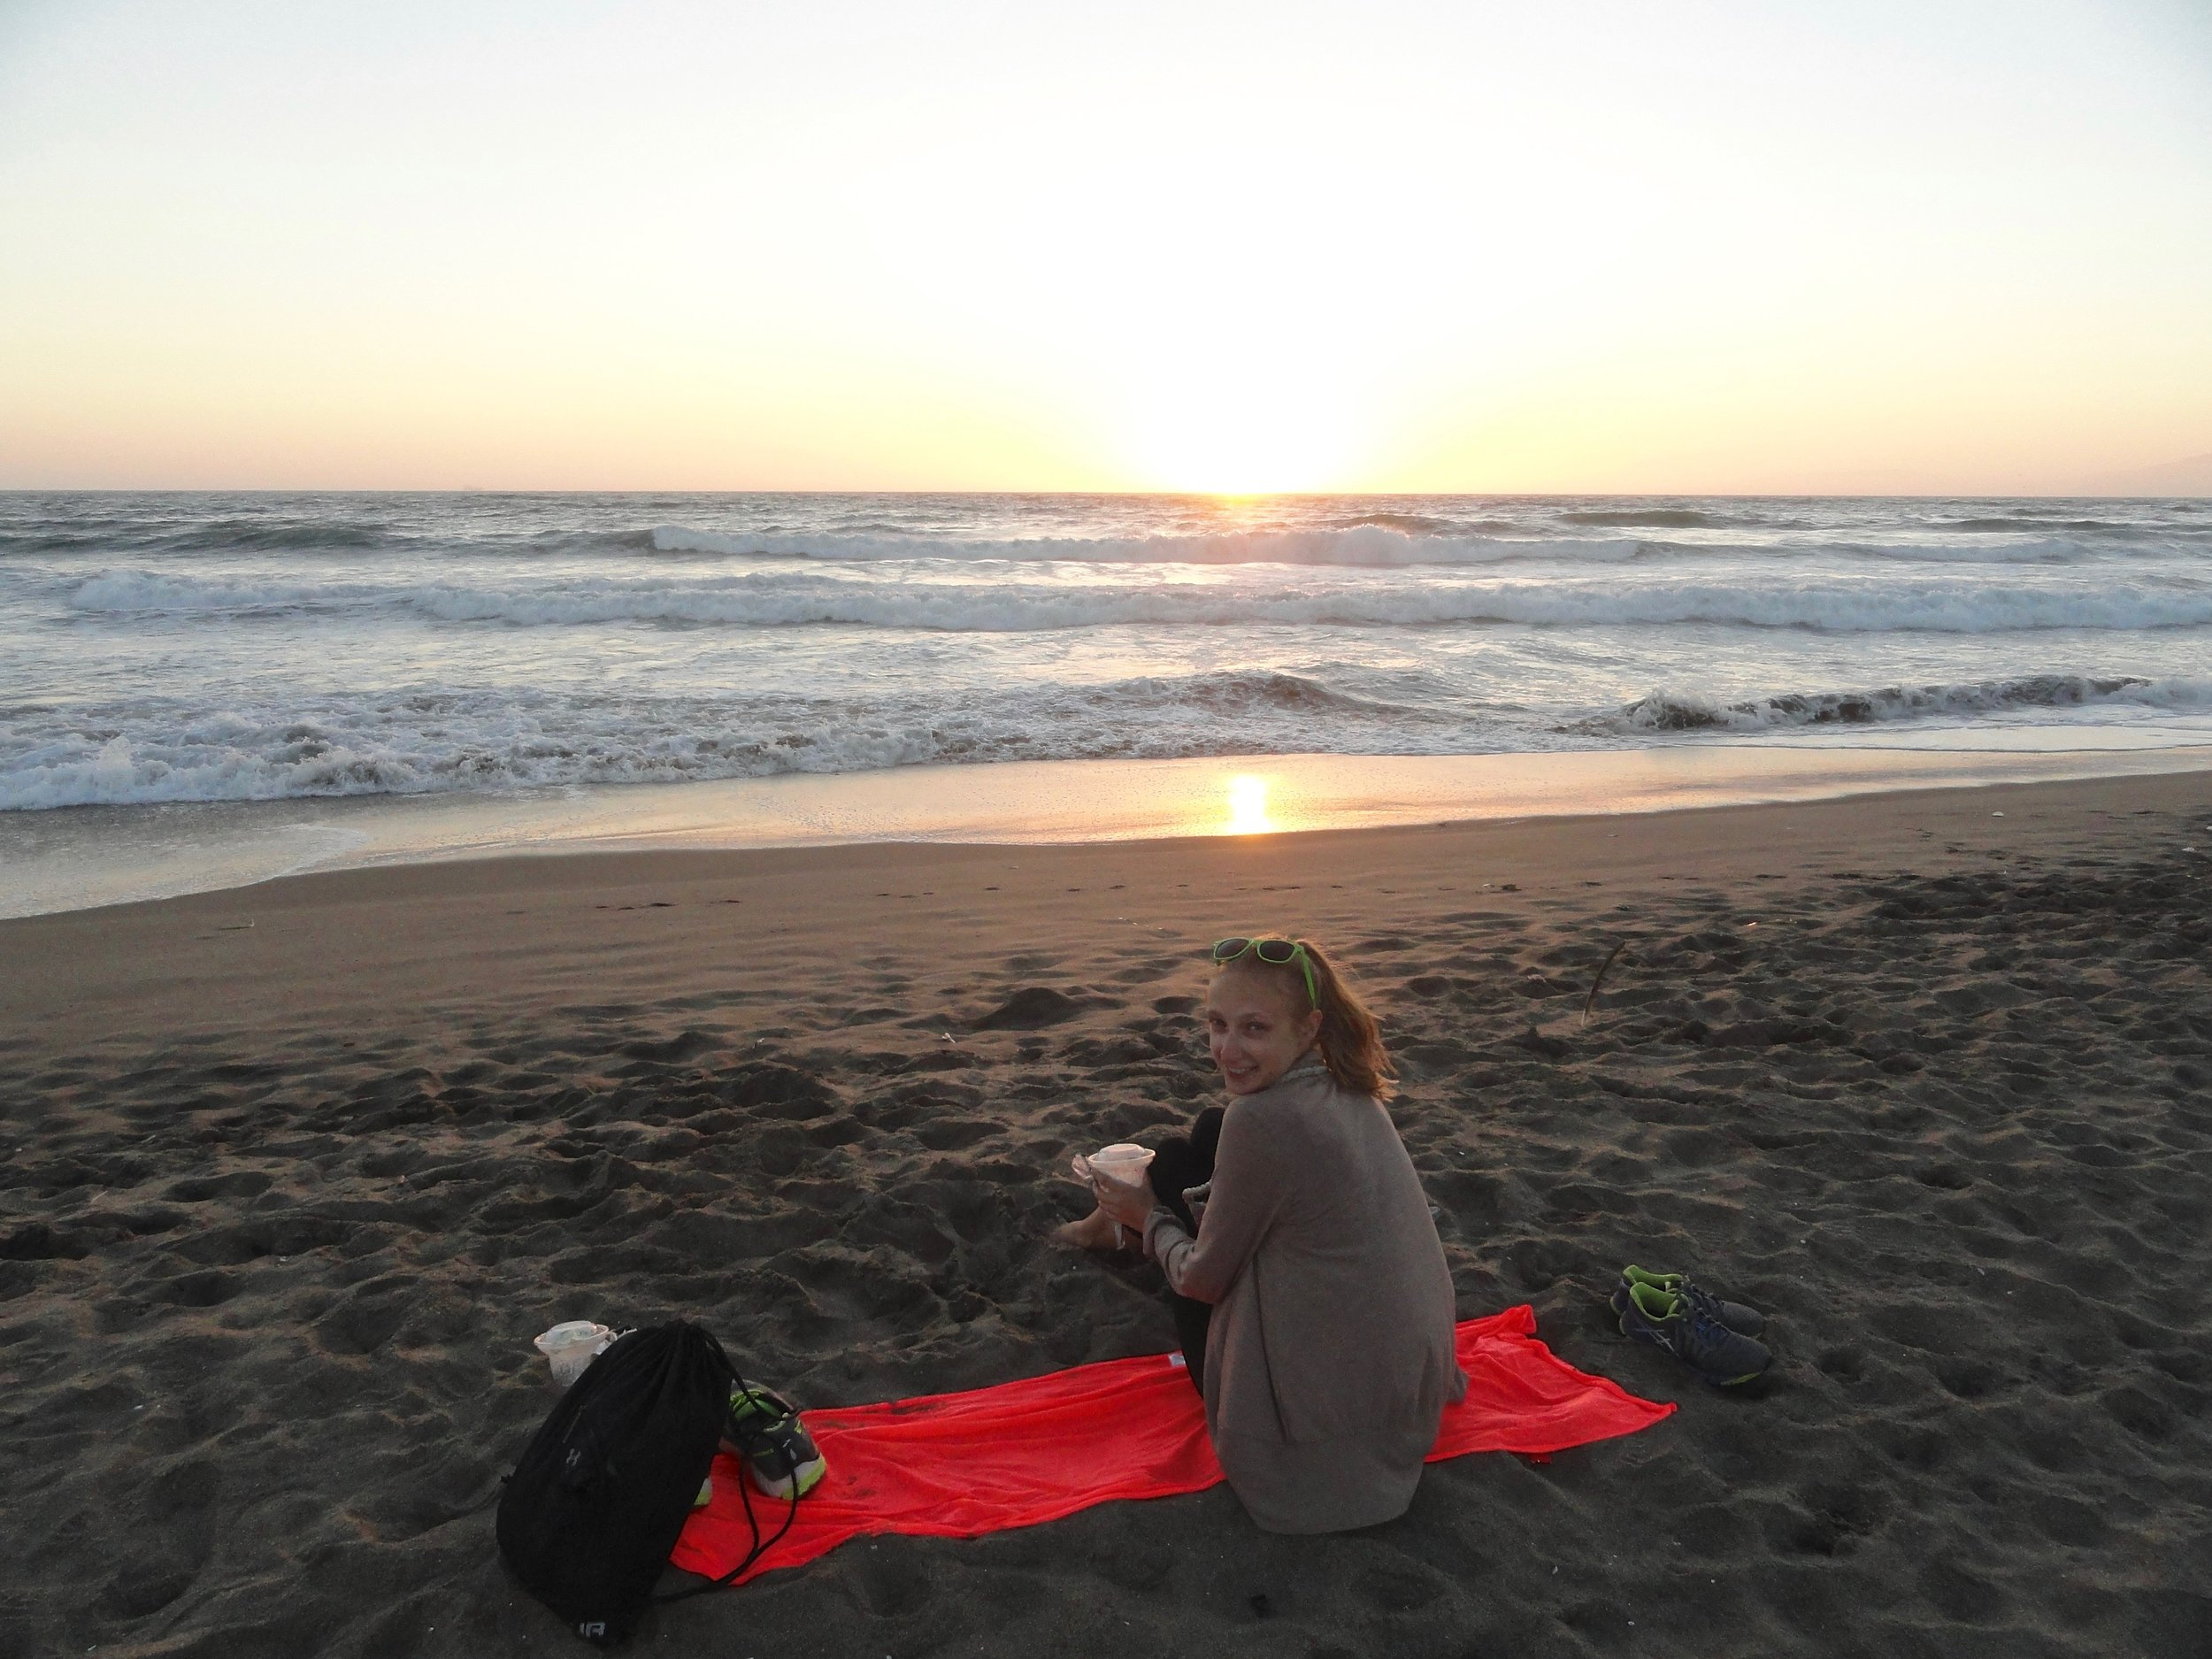 Sunset on the beach in San Francisco.